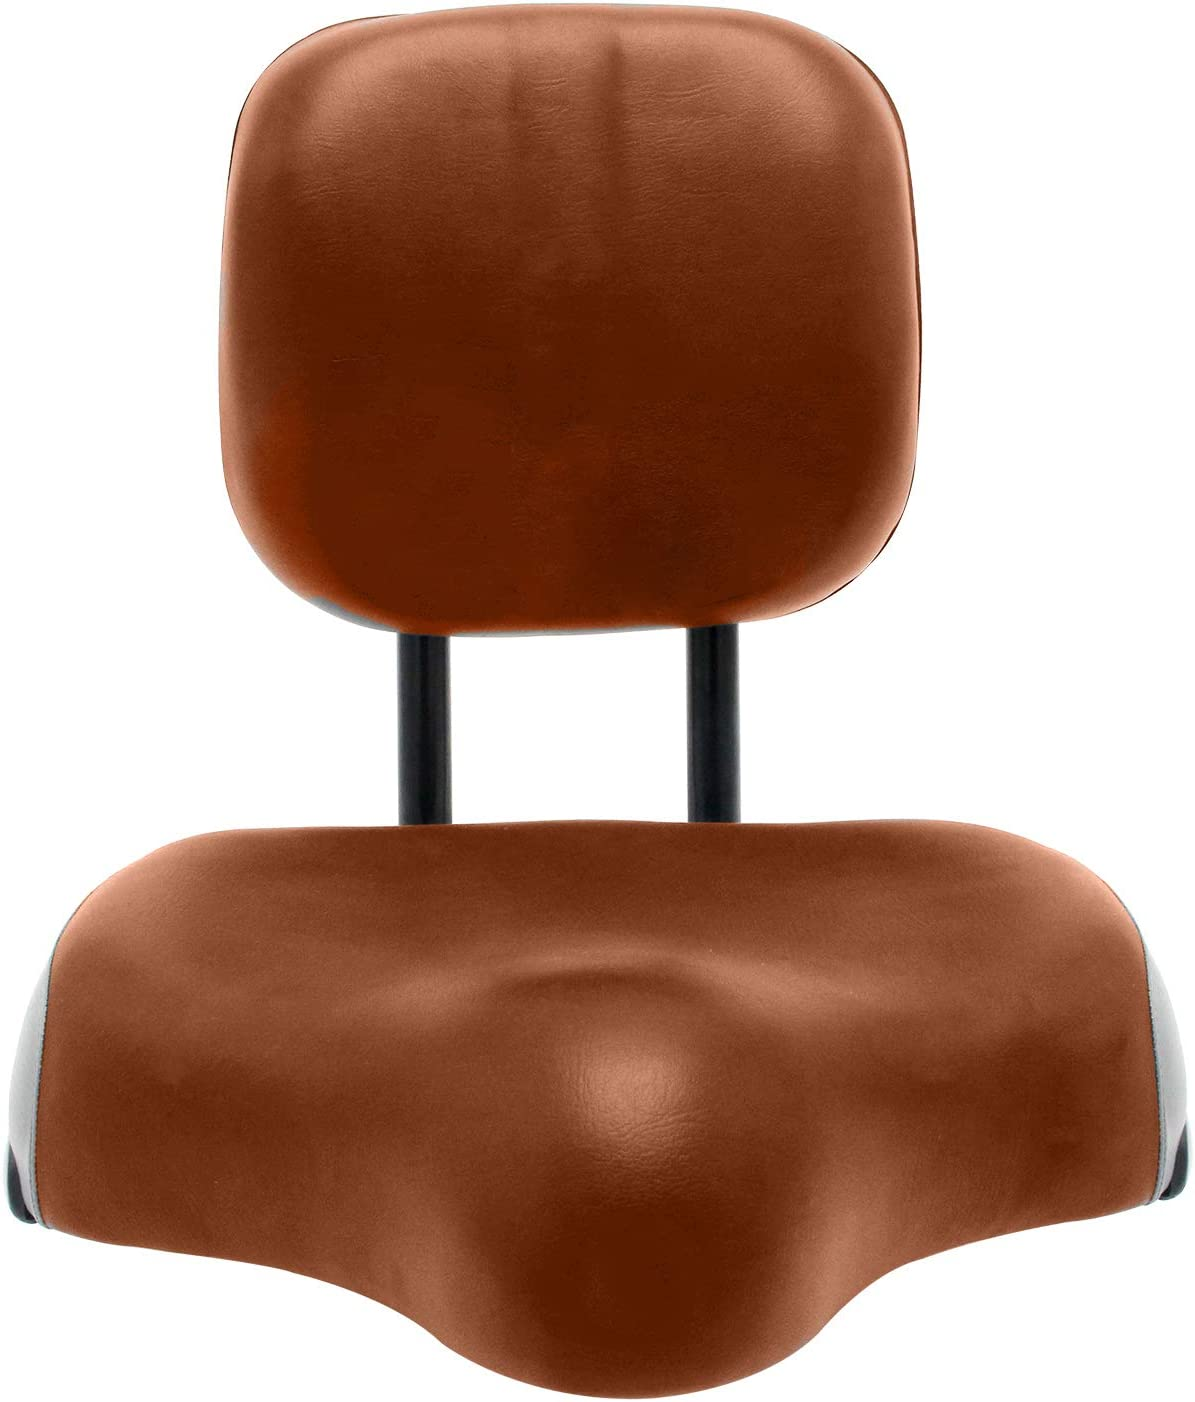 11.5 x 9.5in Large Saddle ABORON Universal Wider Bicycle Backrest Saddle Seat Faux Leather Cycling Seat Cushion with Backrest